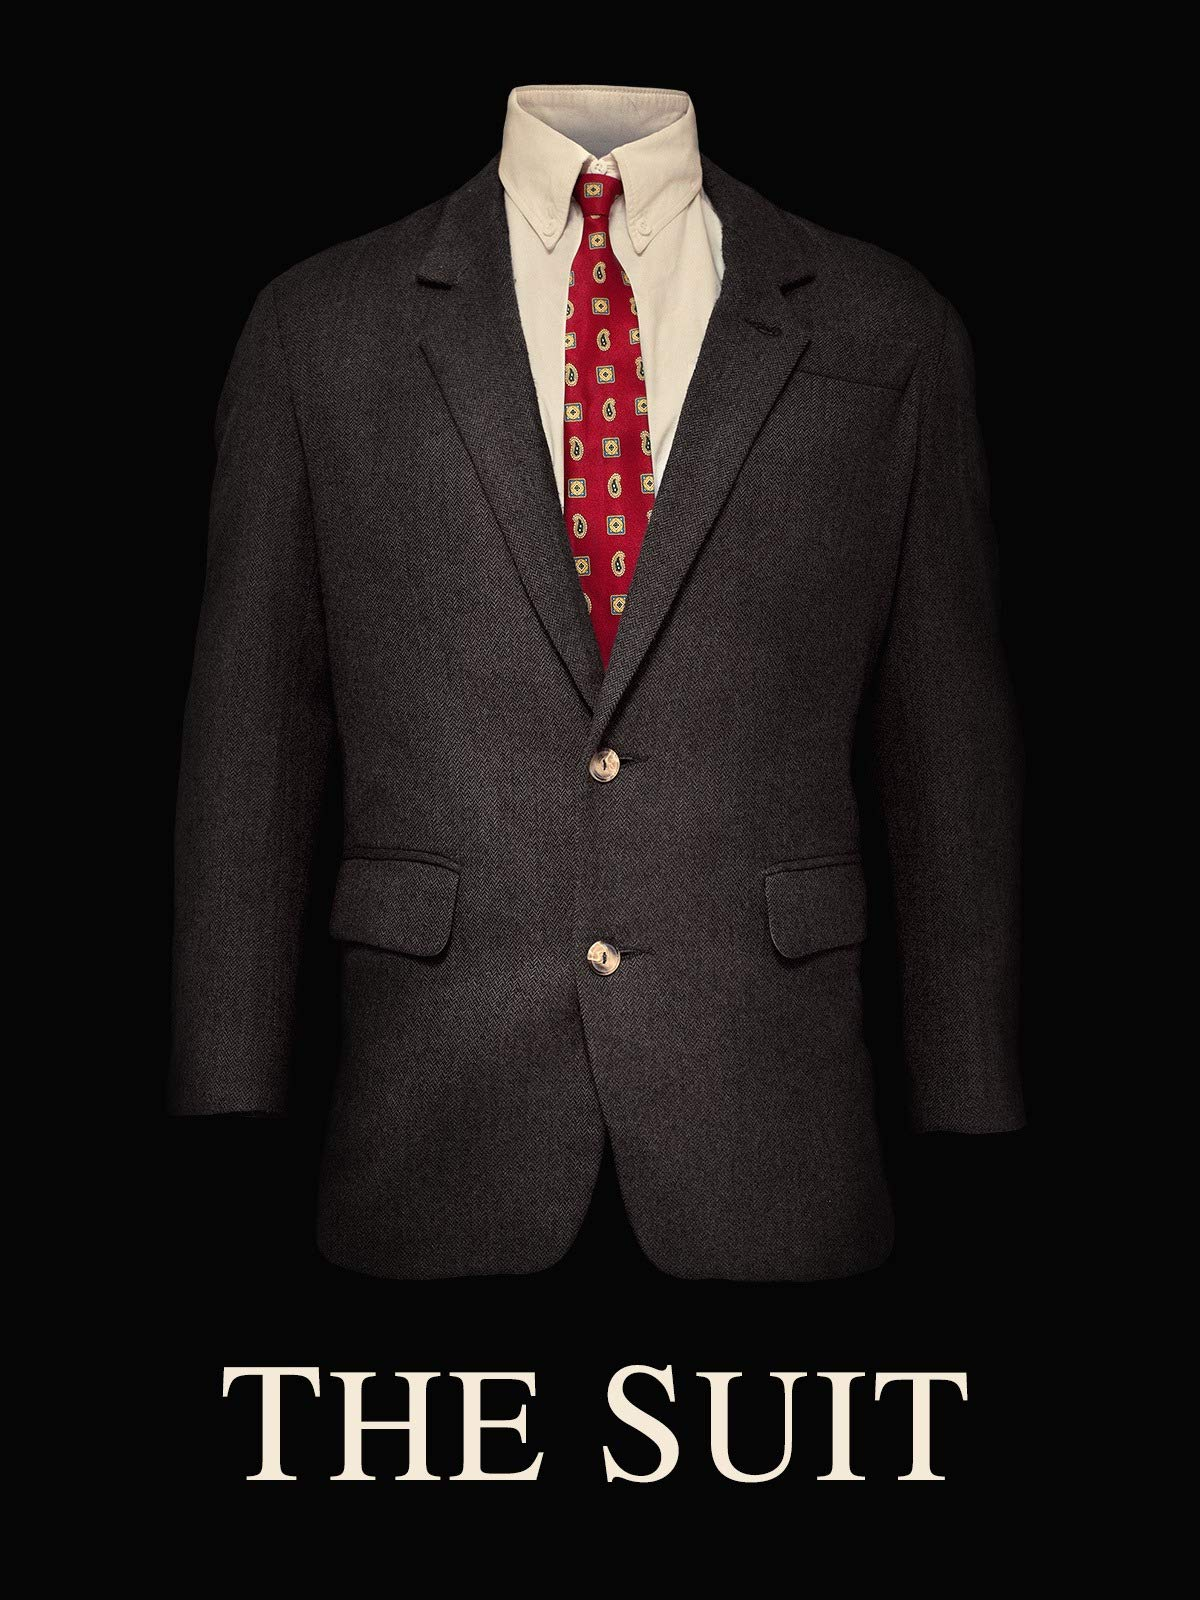 The Suit on Amazon Prime Video UK